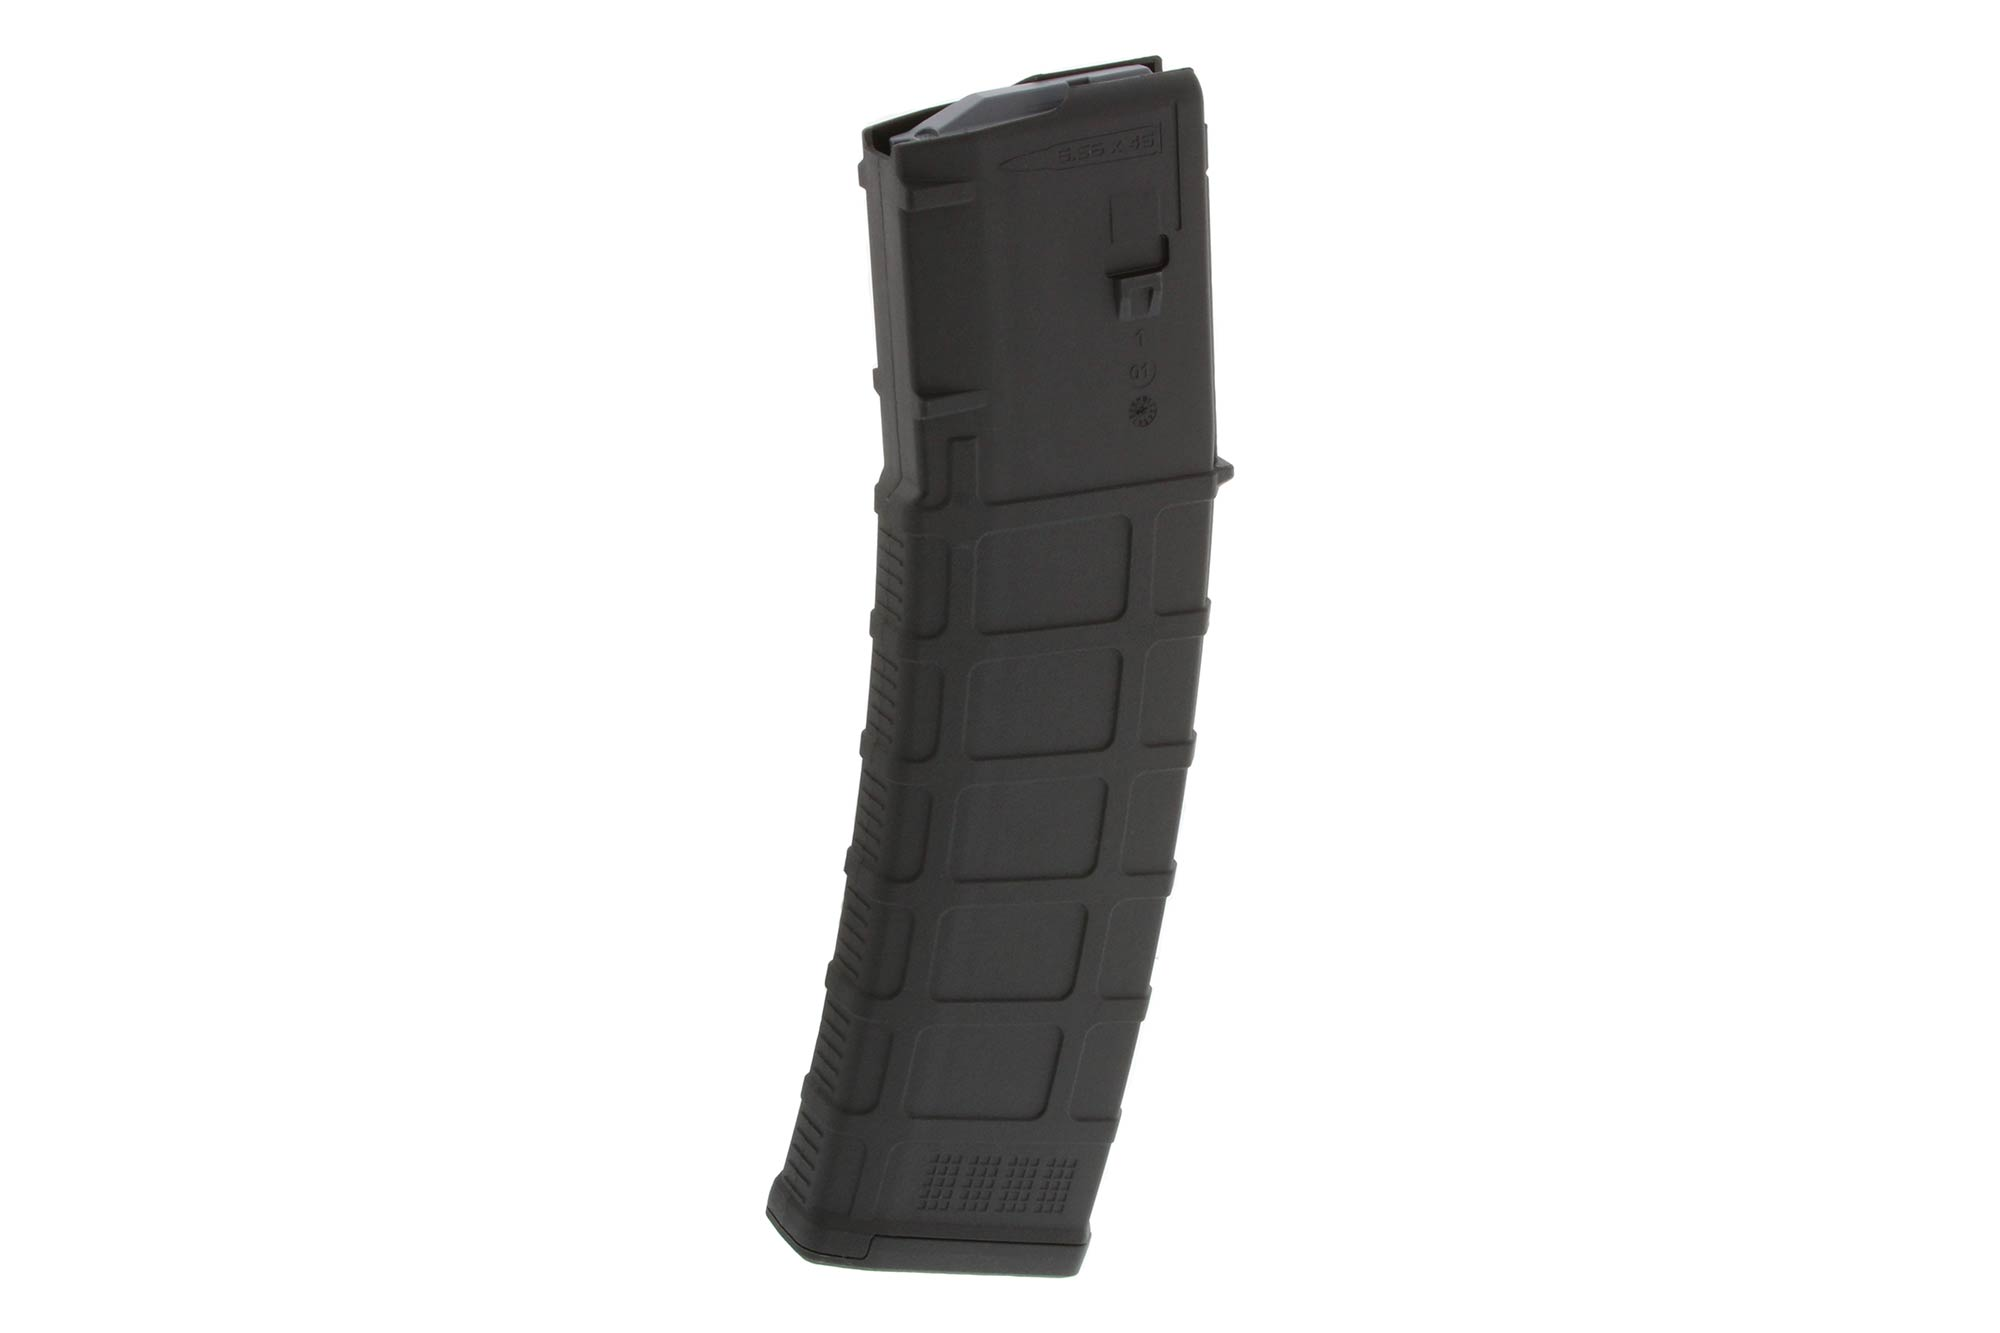 The Magpul PMAG 40 AR/M4 Gen M3 5.56 magazine with black polymer body features a constant curve internal geometry